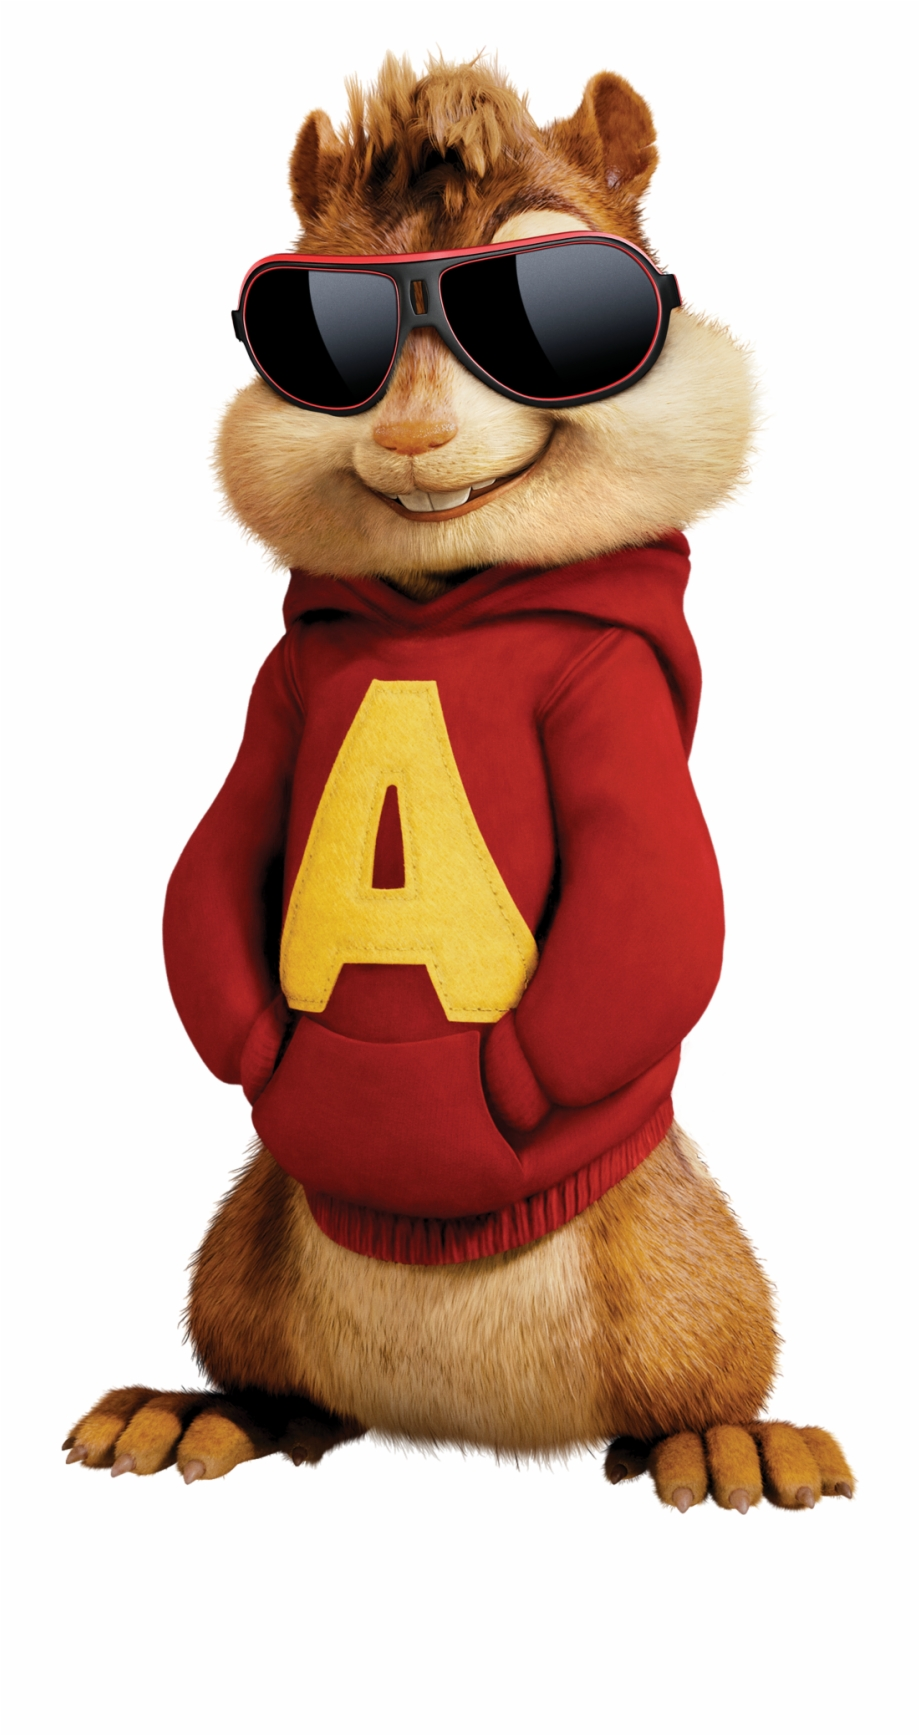 Png Images, Pngs, Alvin And The Chipmunks, Chipmunks Free PNG Images.